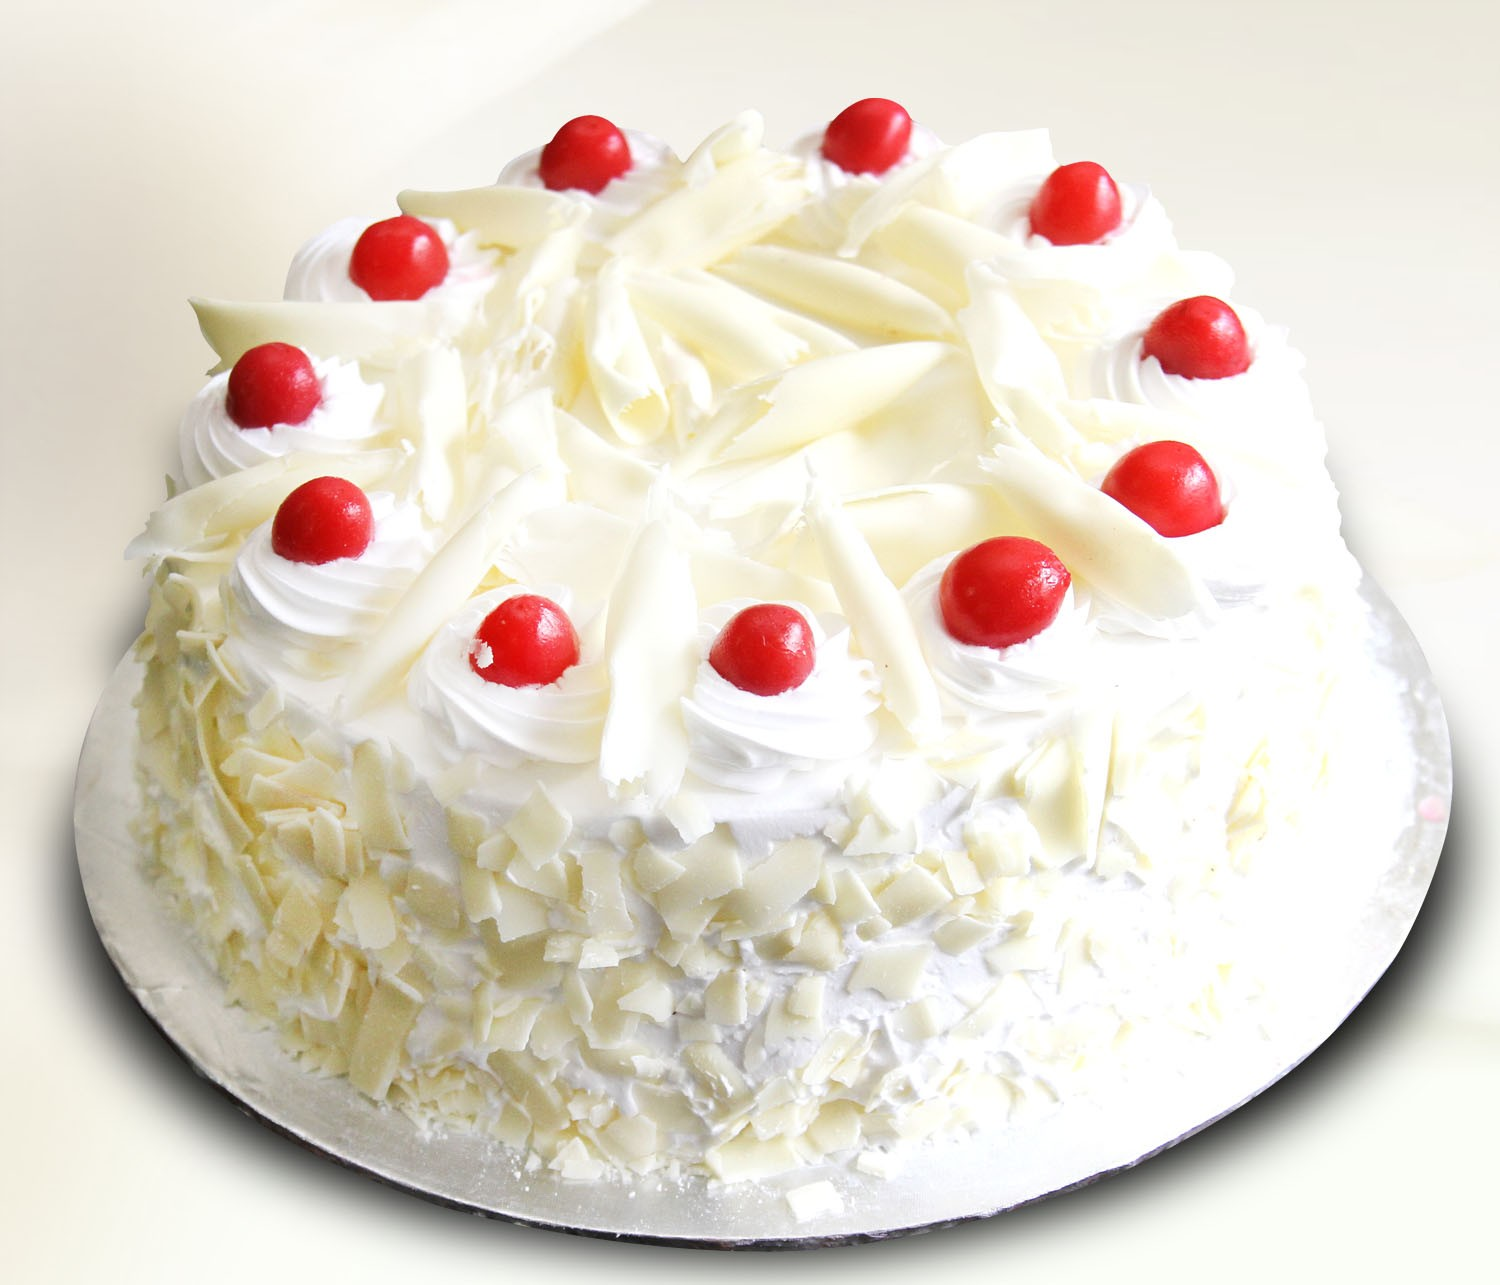 Cake Delivery at Home: We Offer White Forest Cakes at ...